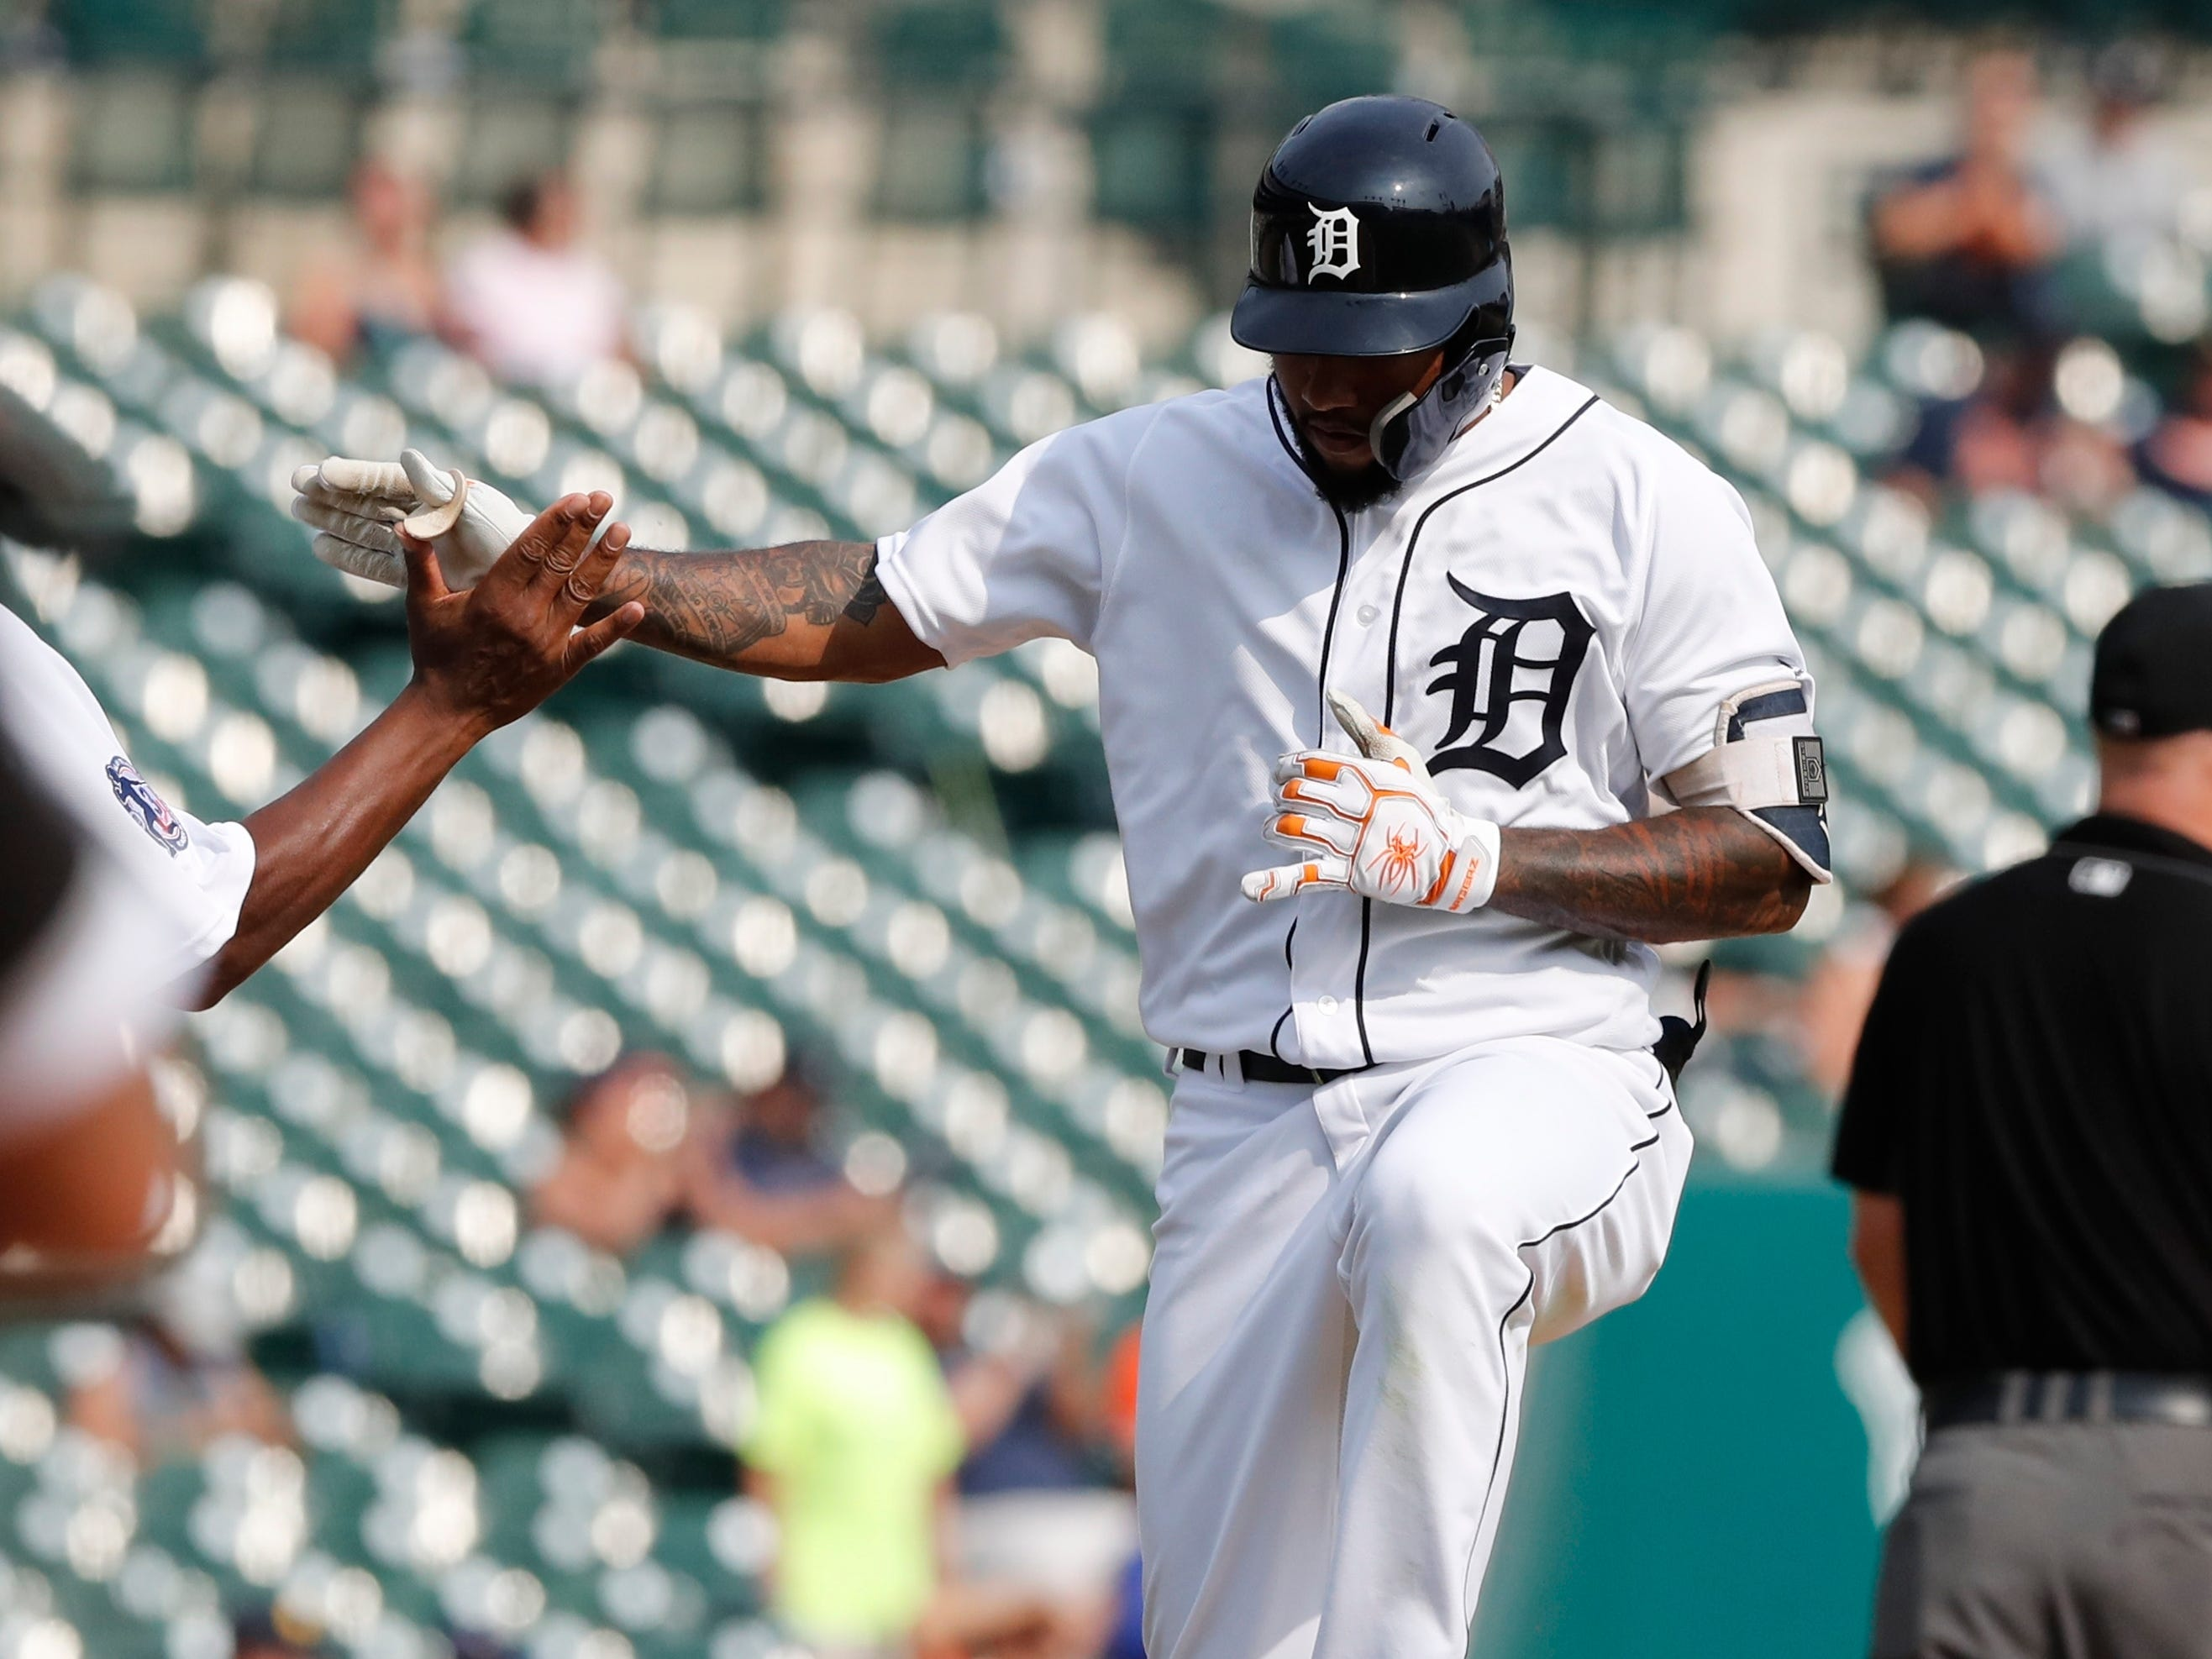 Detroit Tigers' Ronny Rodriguez jumps as he is greeted by third base coach Dave Clark after a solo home run during the ninth inning.